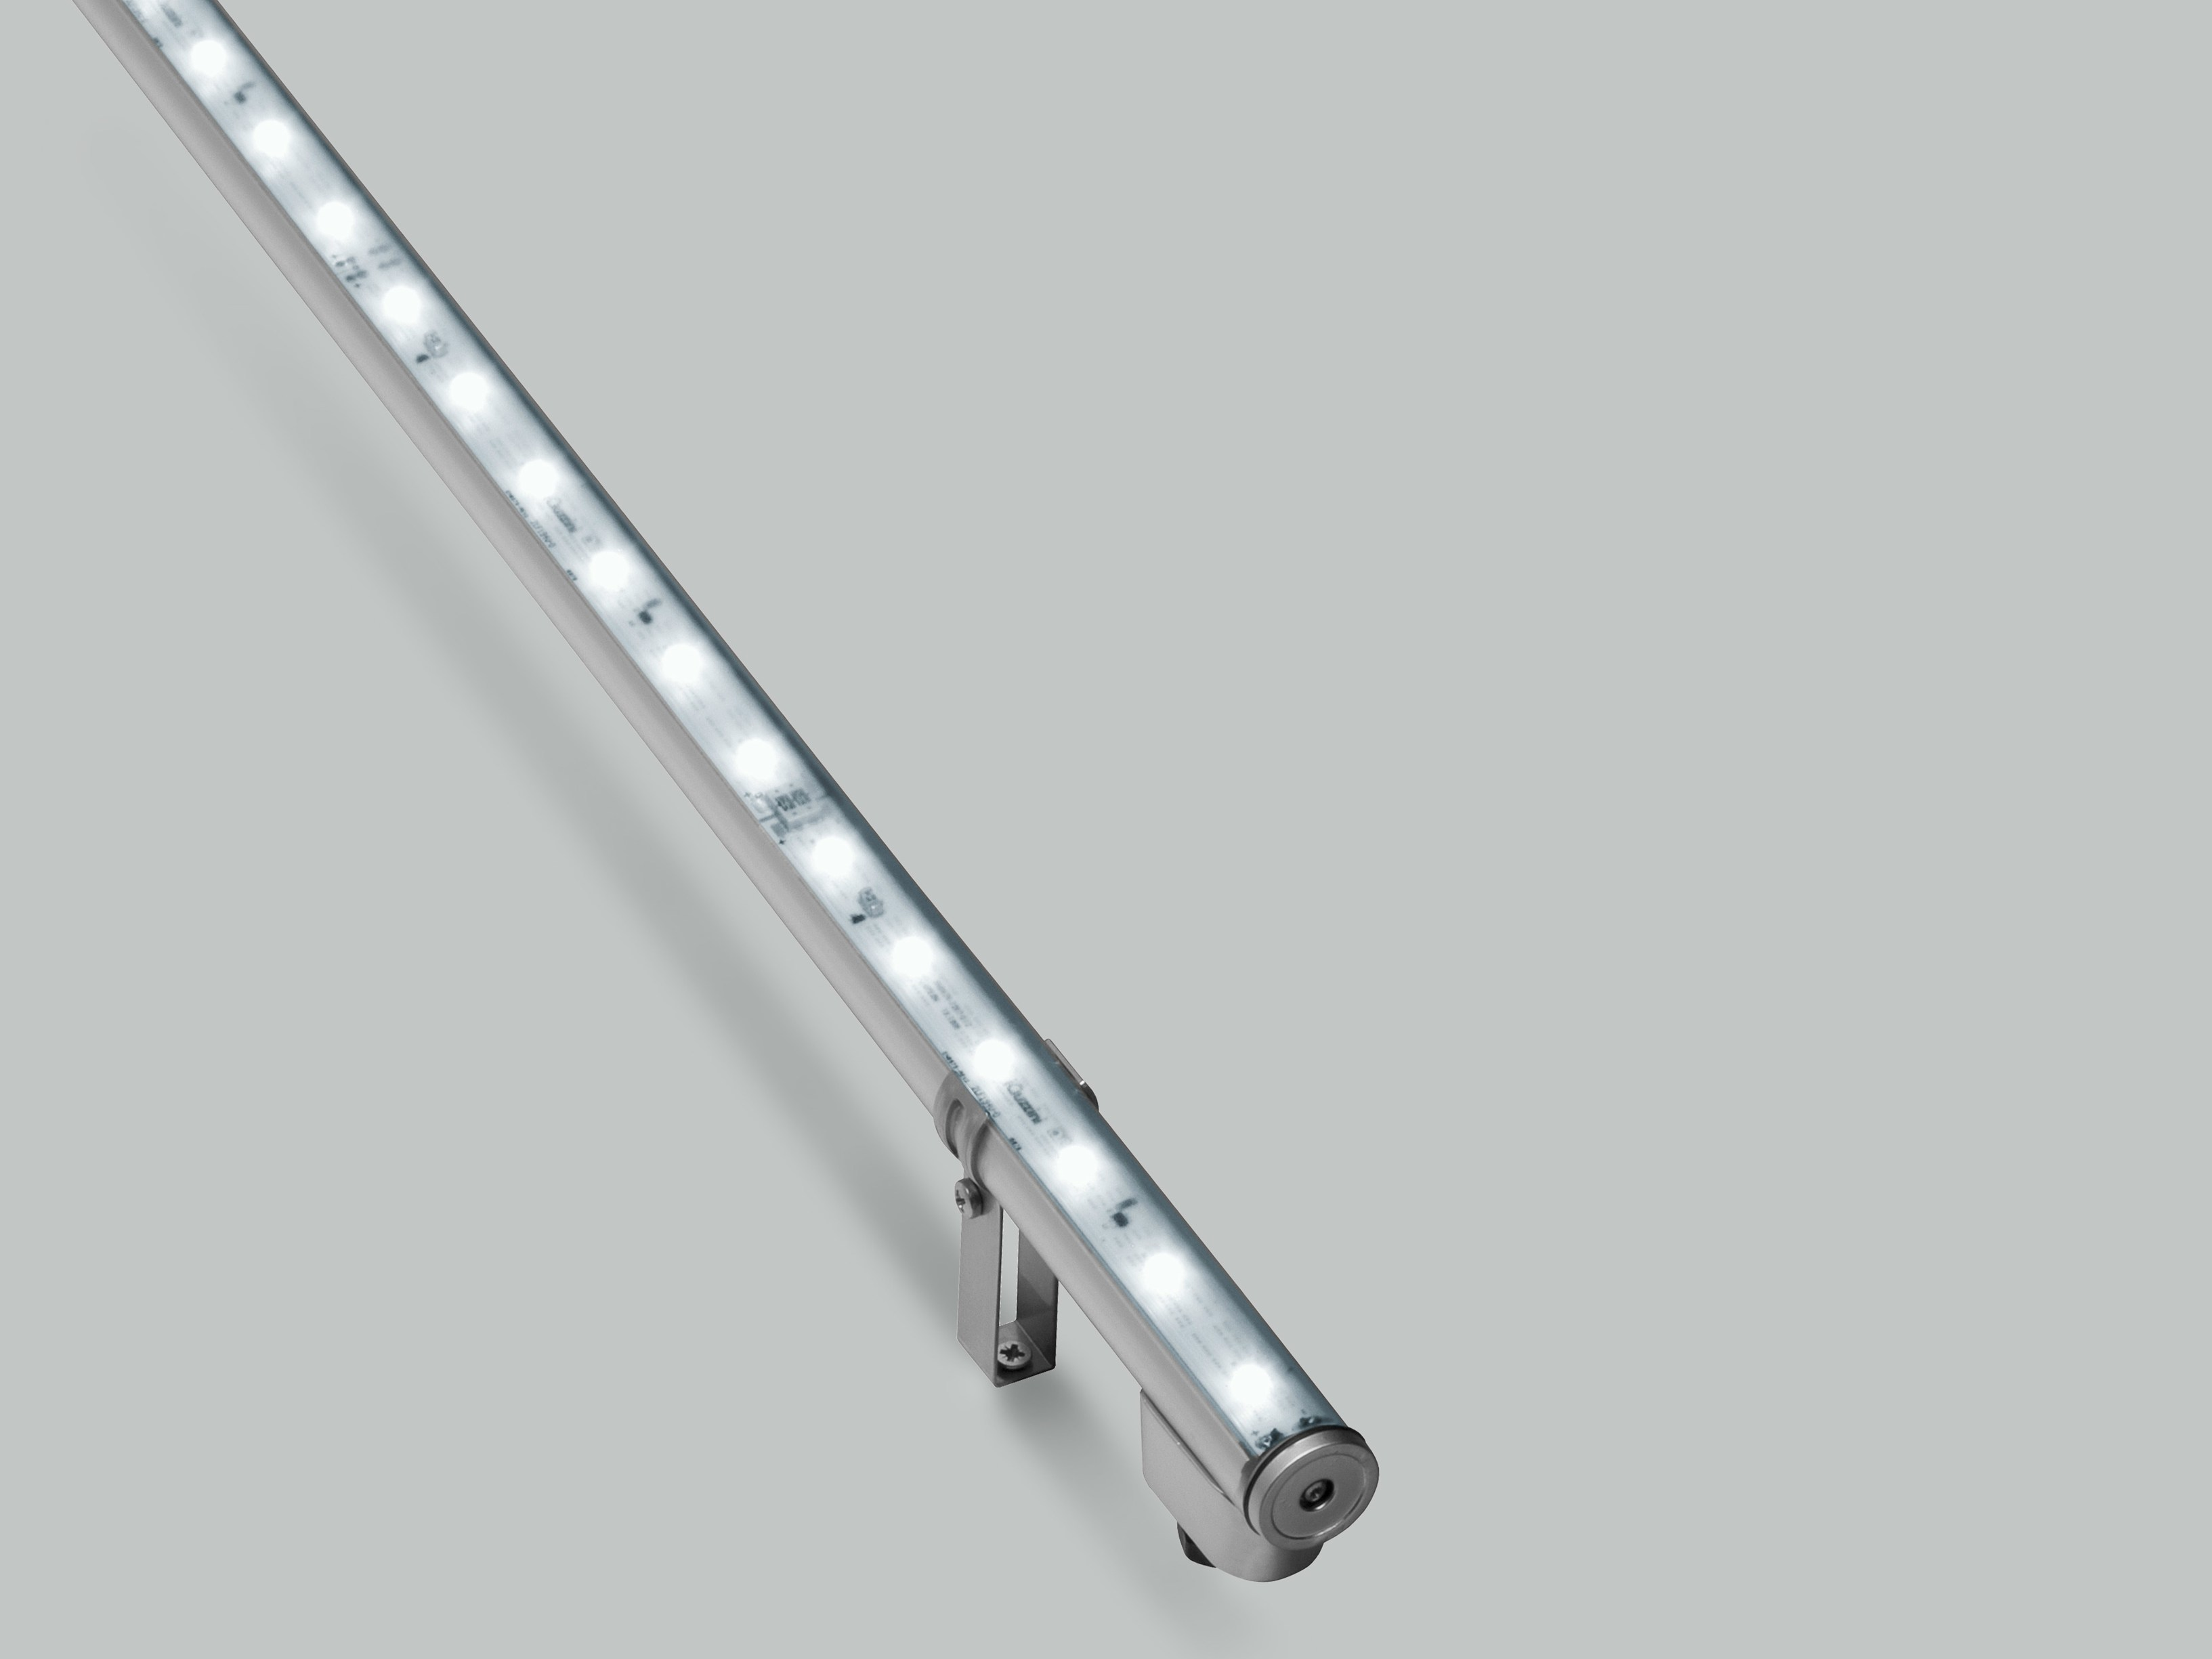 Ceiling mounted lighting profile for LED modules LED TUBE by iGuzzini Illumin...